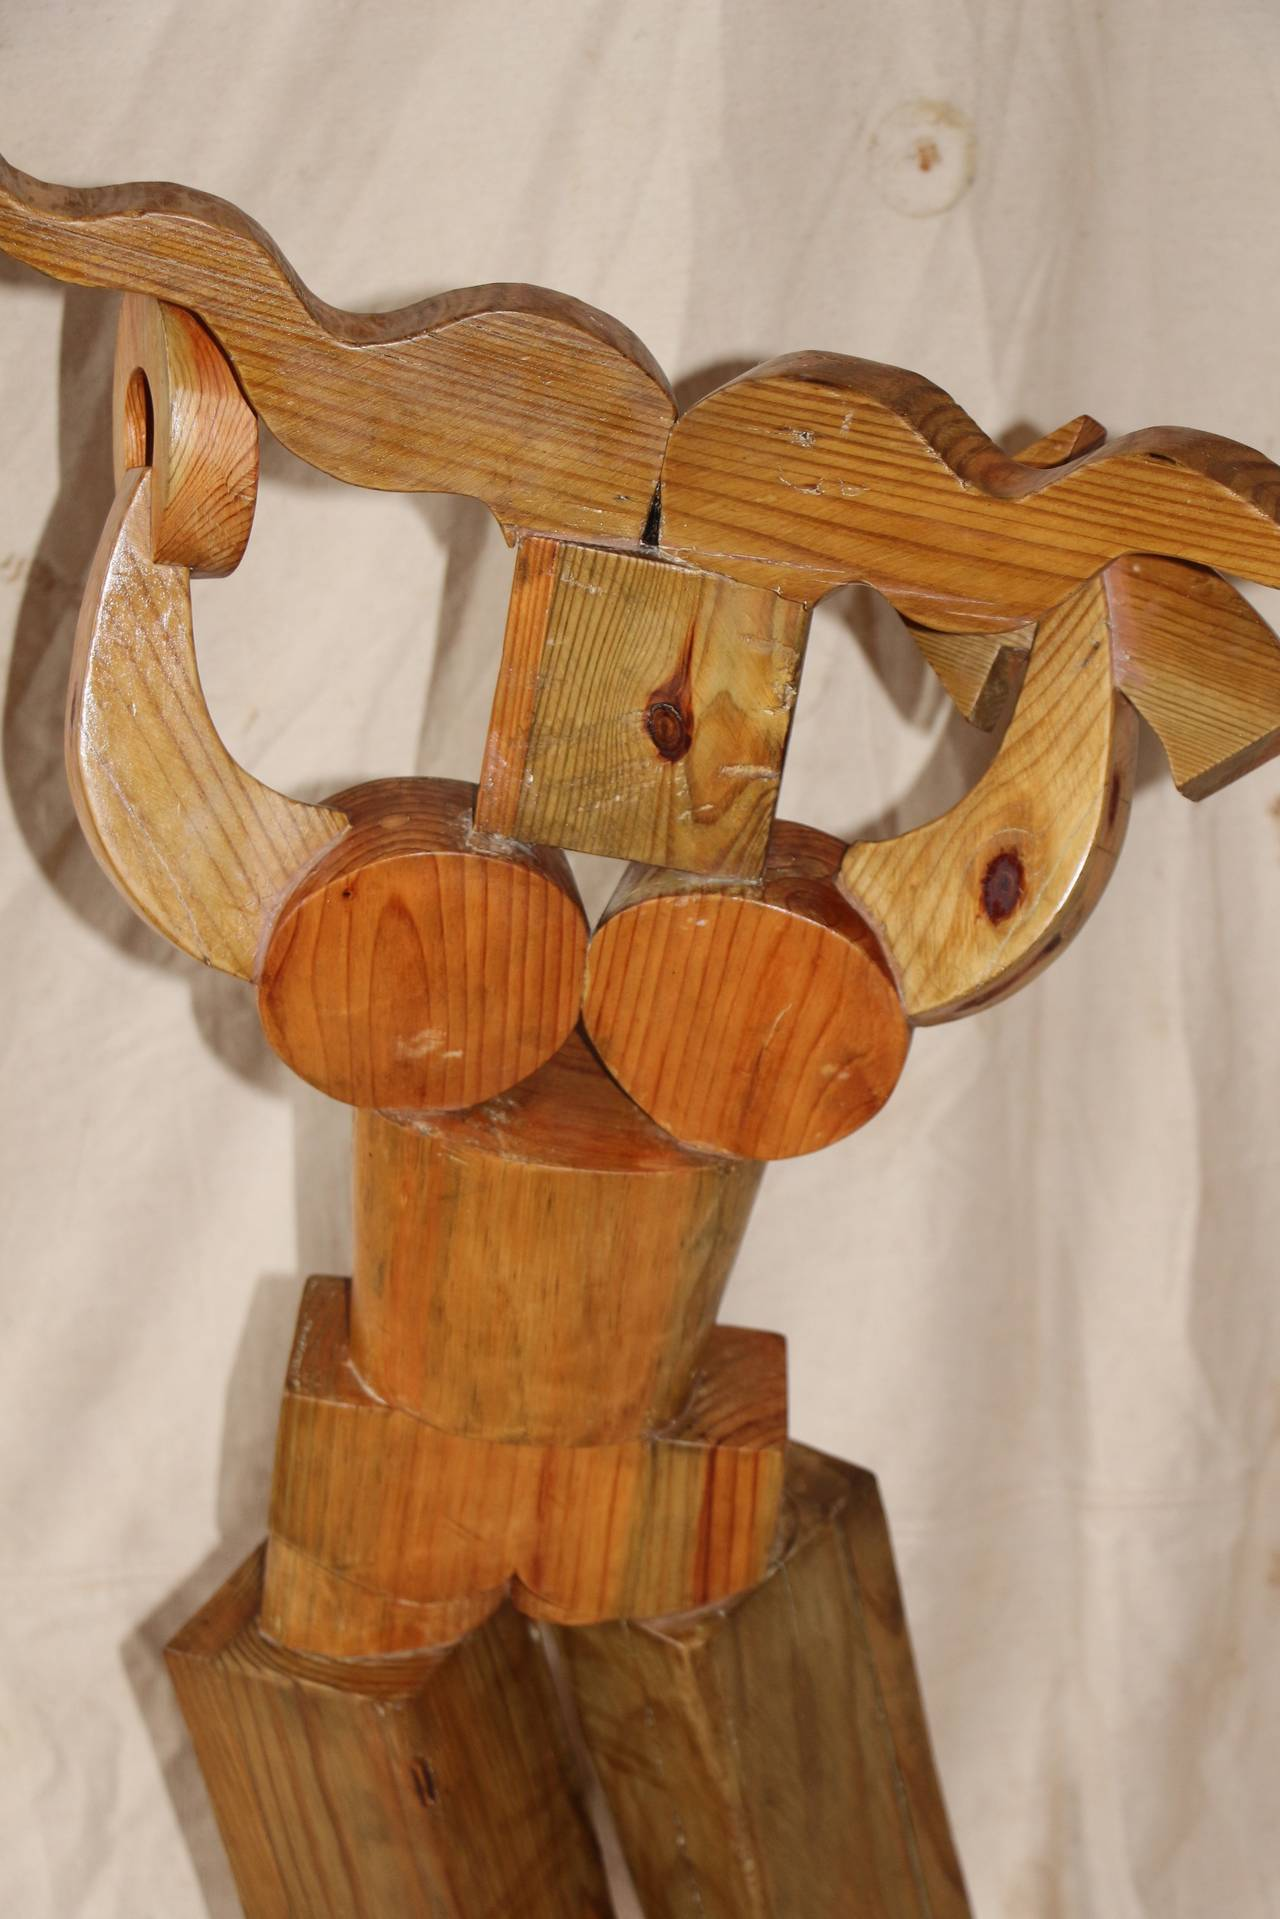 Late 20th Century Whimsical Wood Sculpture by Noted Artist Fred Schumm For Sale